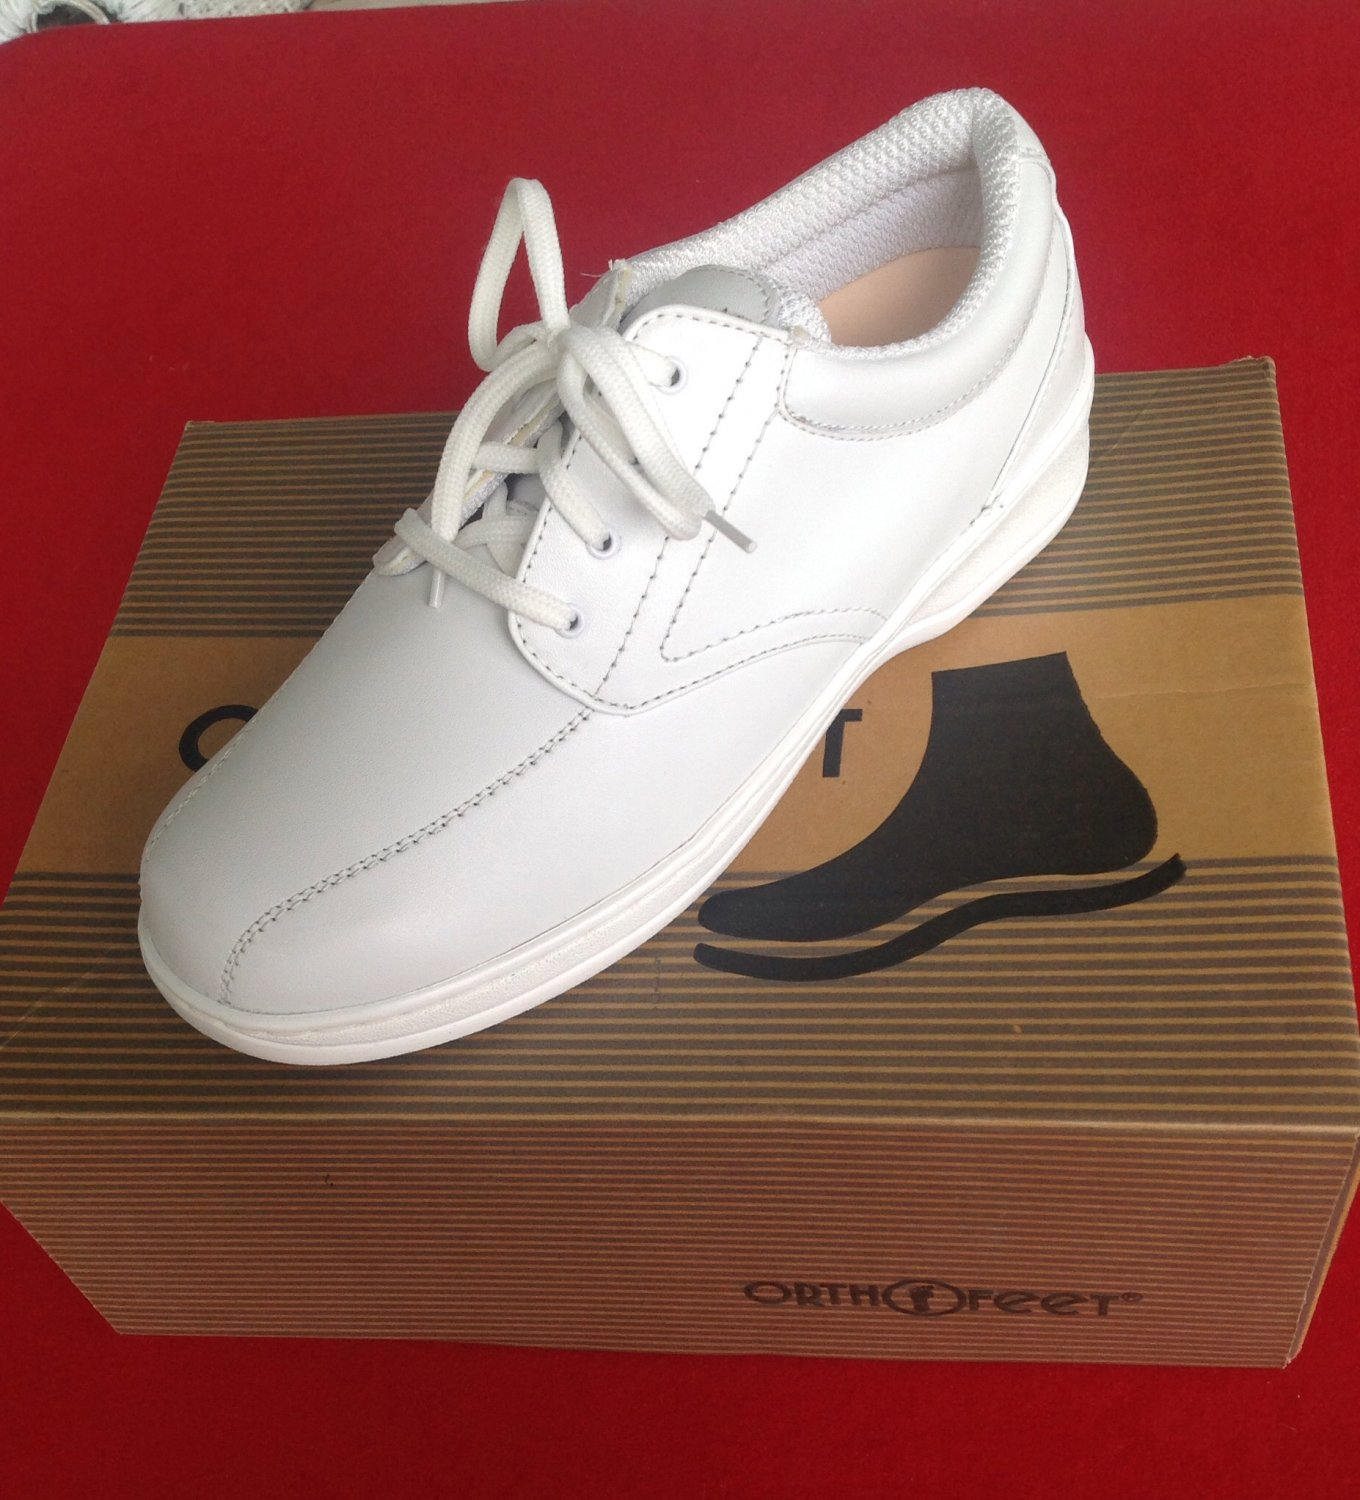 Women's Orthofeet white. Oxford shoes 8 m